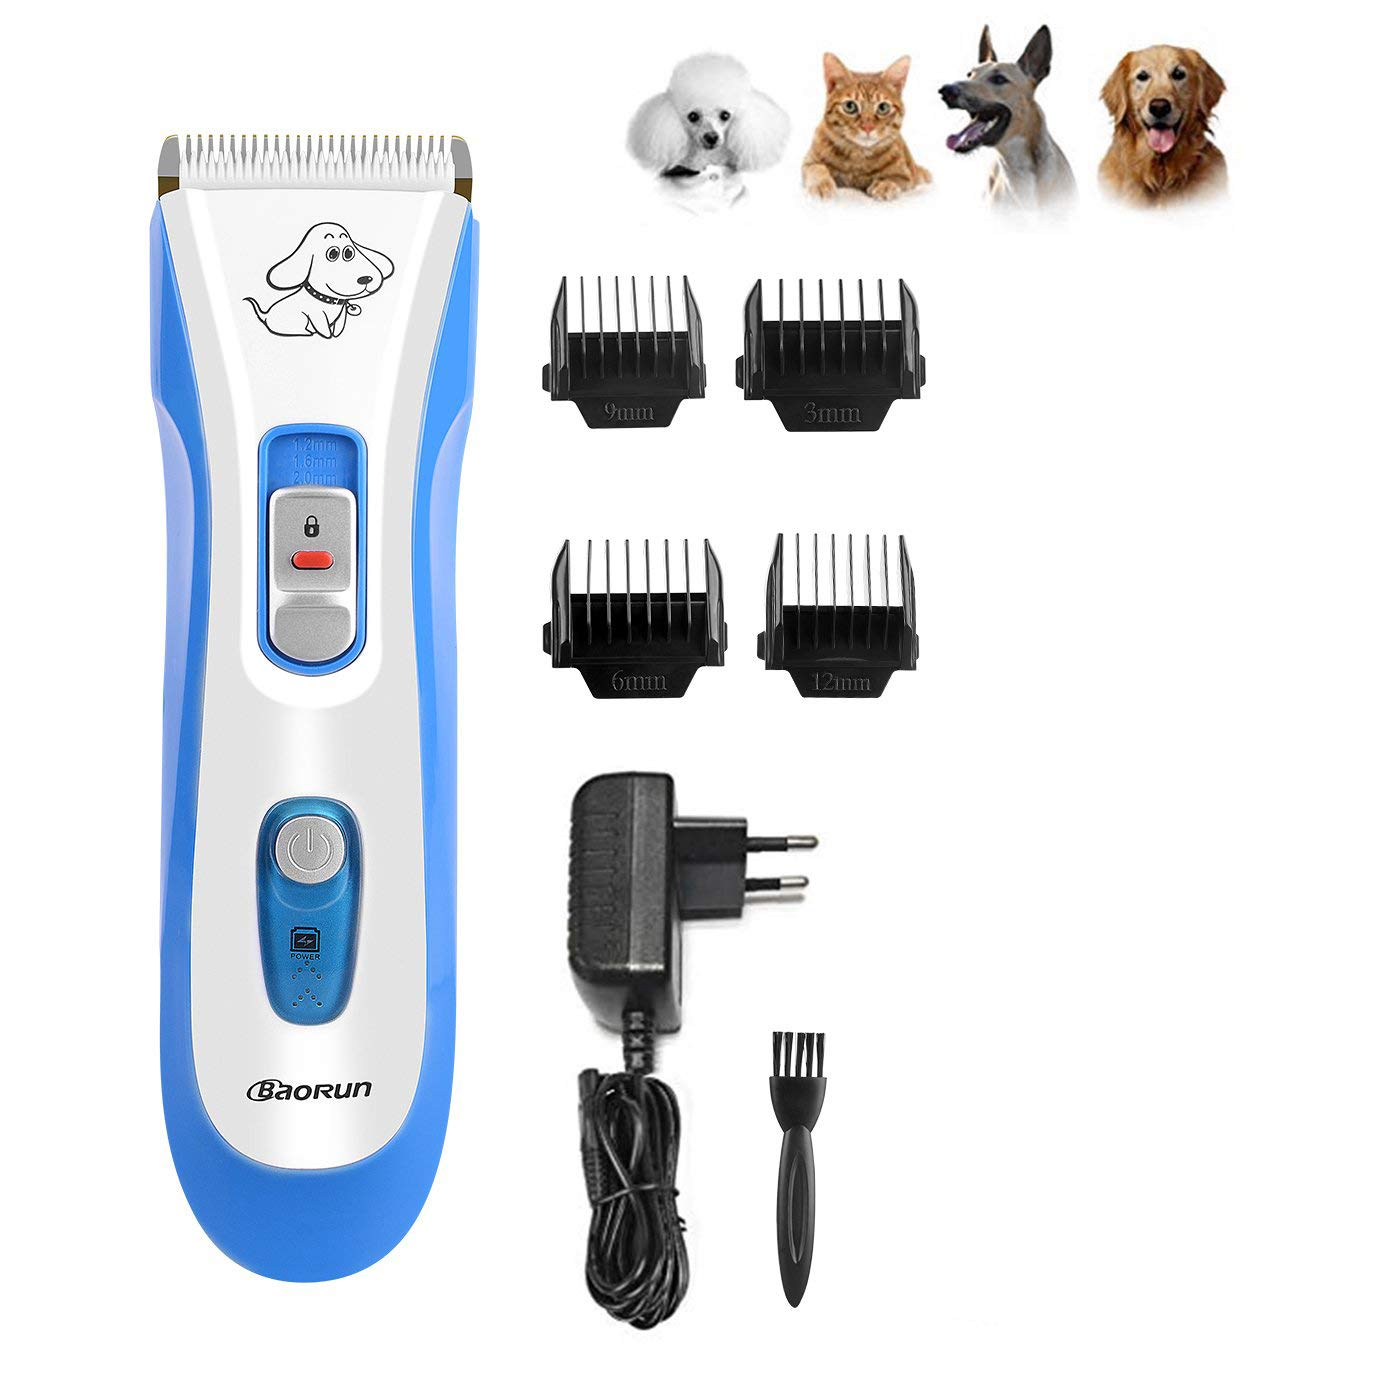 Low Noise Rechargeable Cordless Cat and Dog Clippers Professional Pet Clippers Grooming Kit,Animal Clippers Pet Grooming Kit